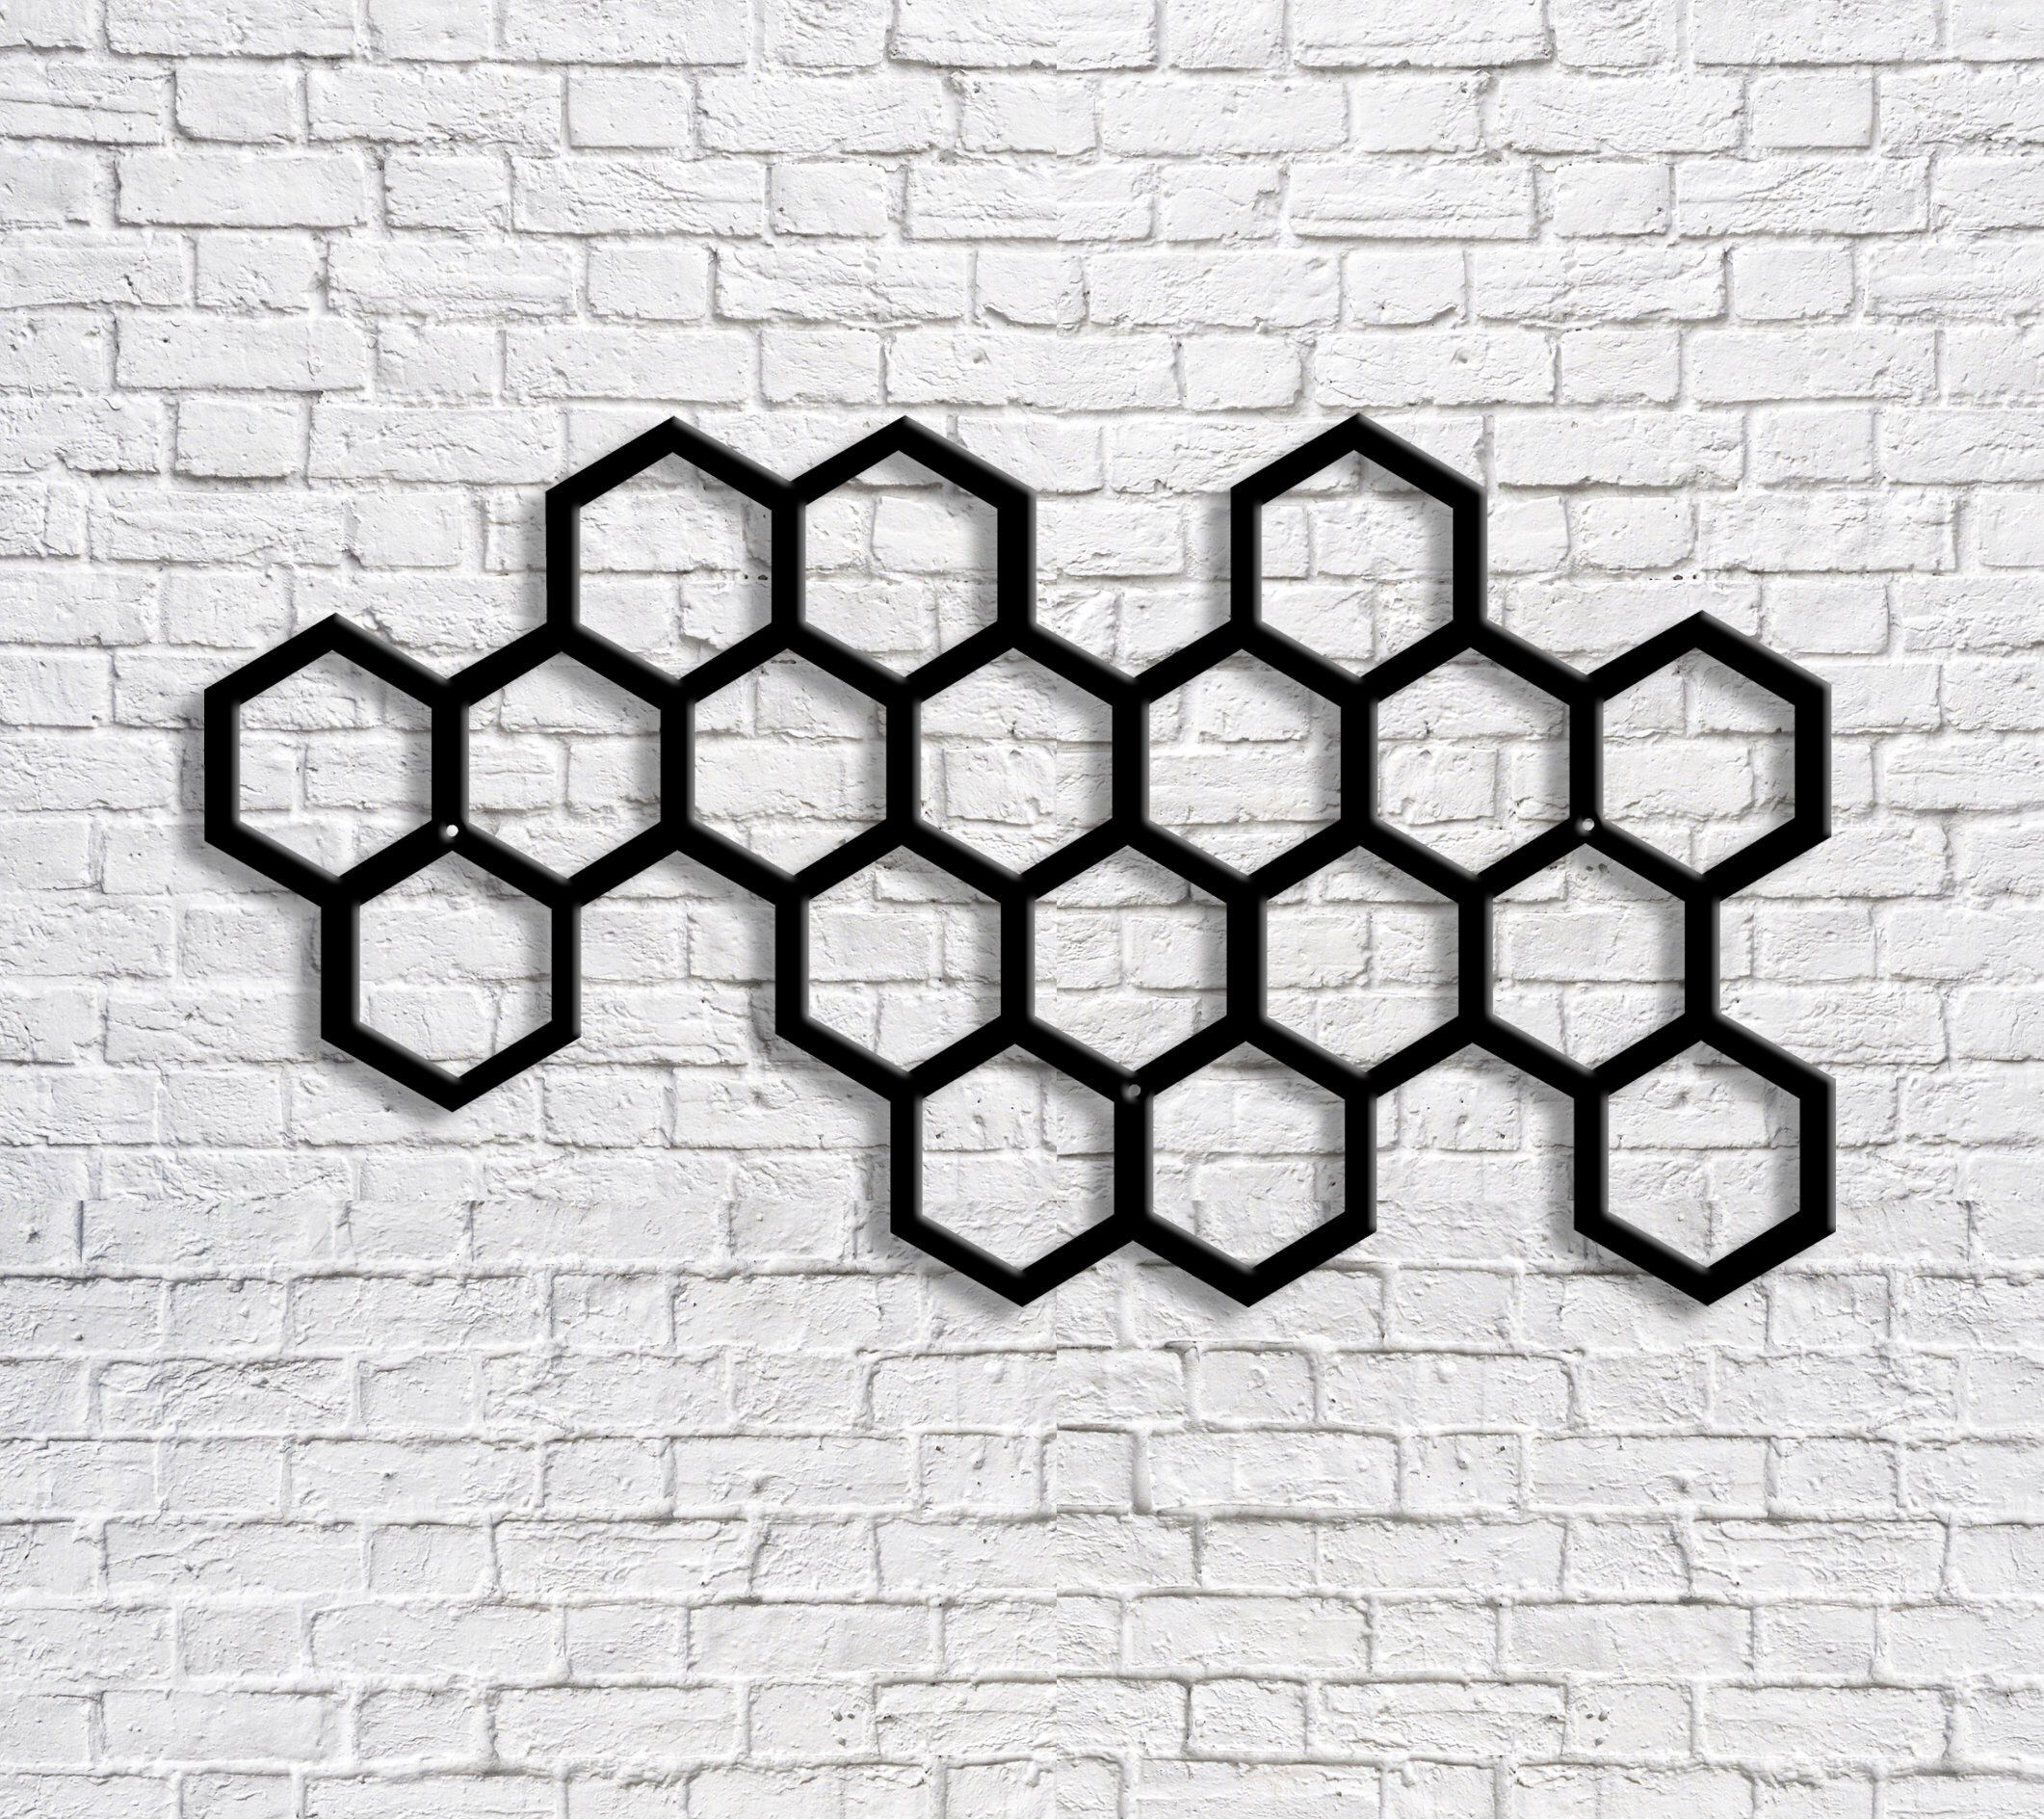 Metal Decorative Honeycomb Wall Hanging Steel Art Outside Etsy In 2020 Hanging Wall Decor Metal Wall Decor Candle Wall Decor